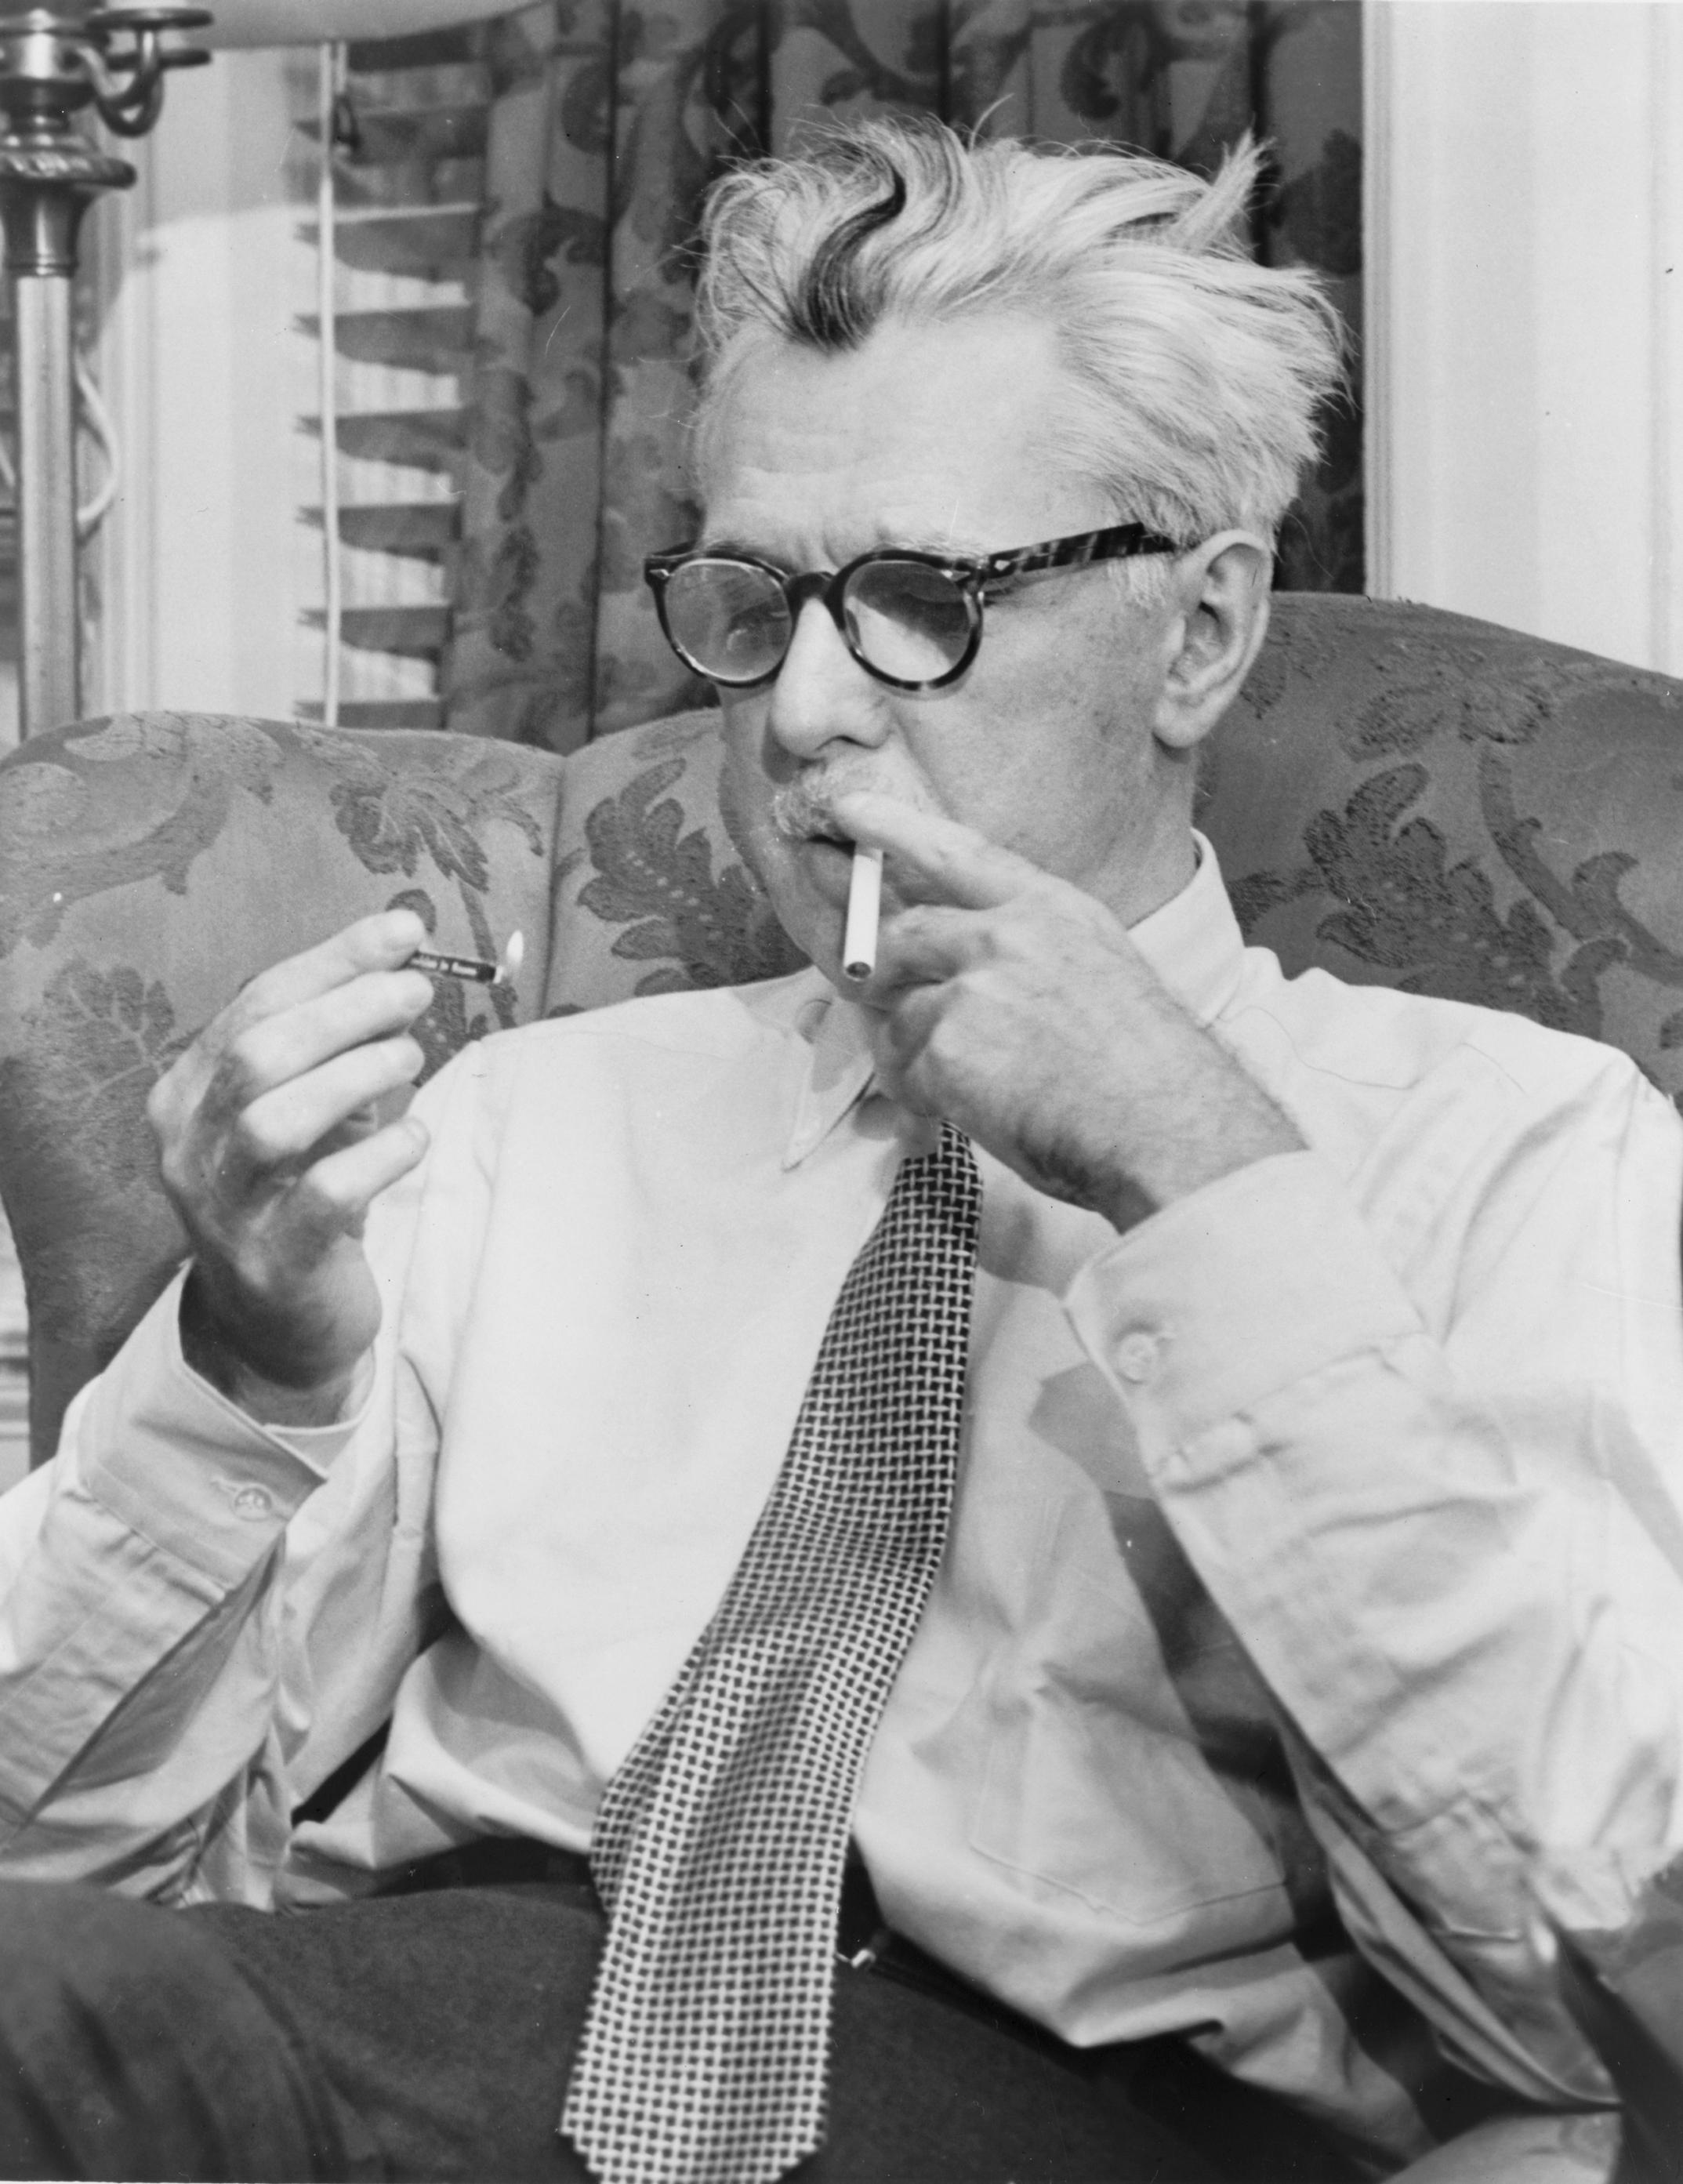 Portrait of James Thurber